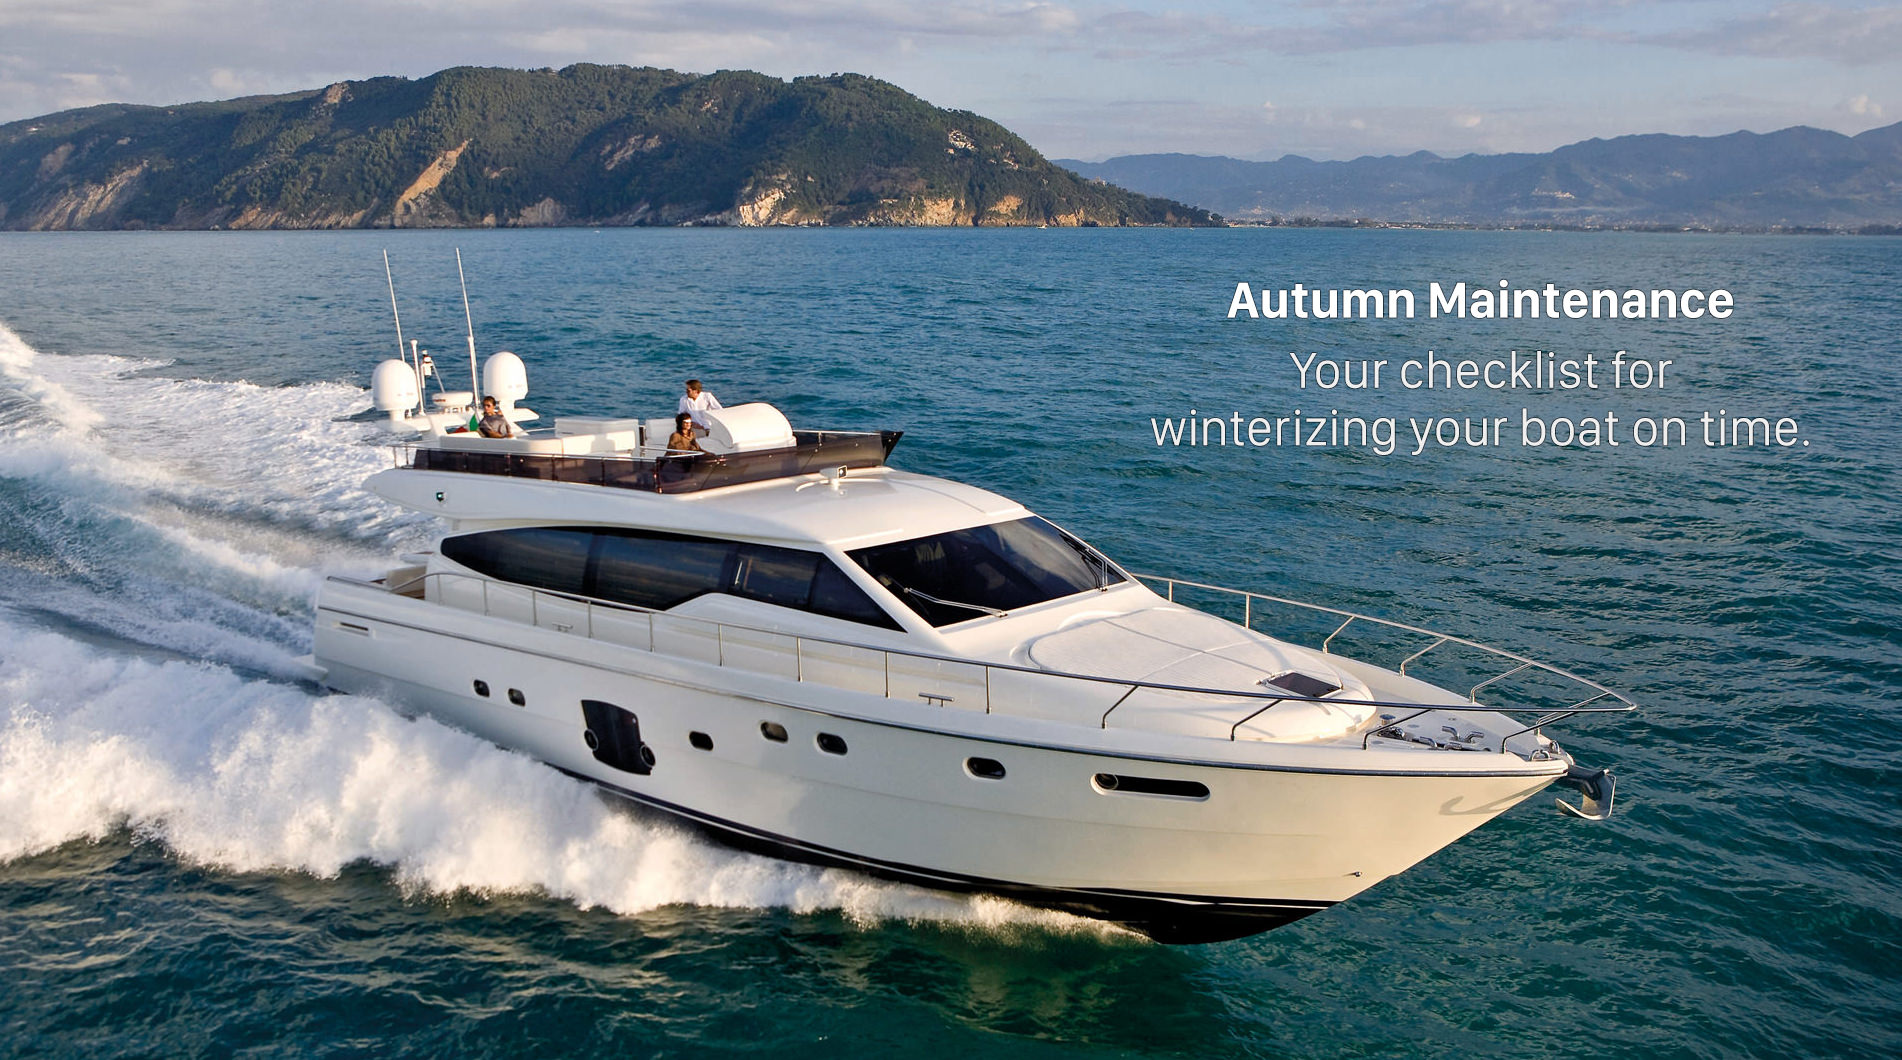 Winterizing Your Boat On Time